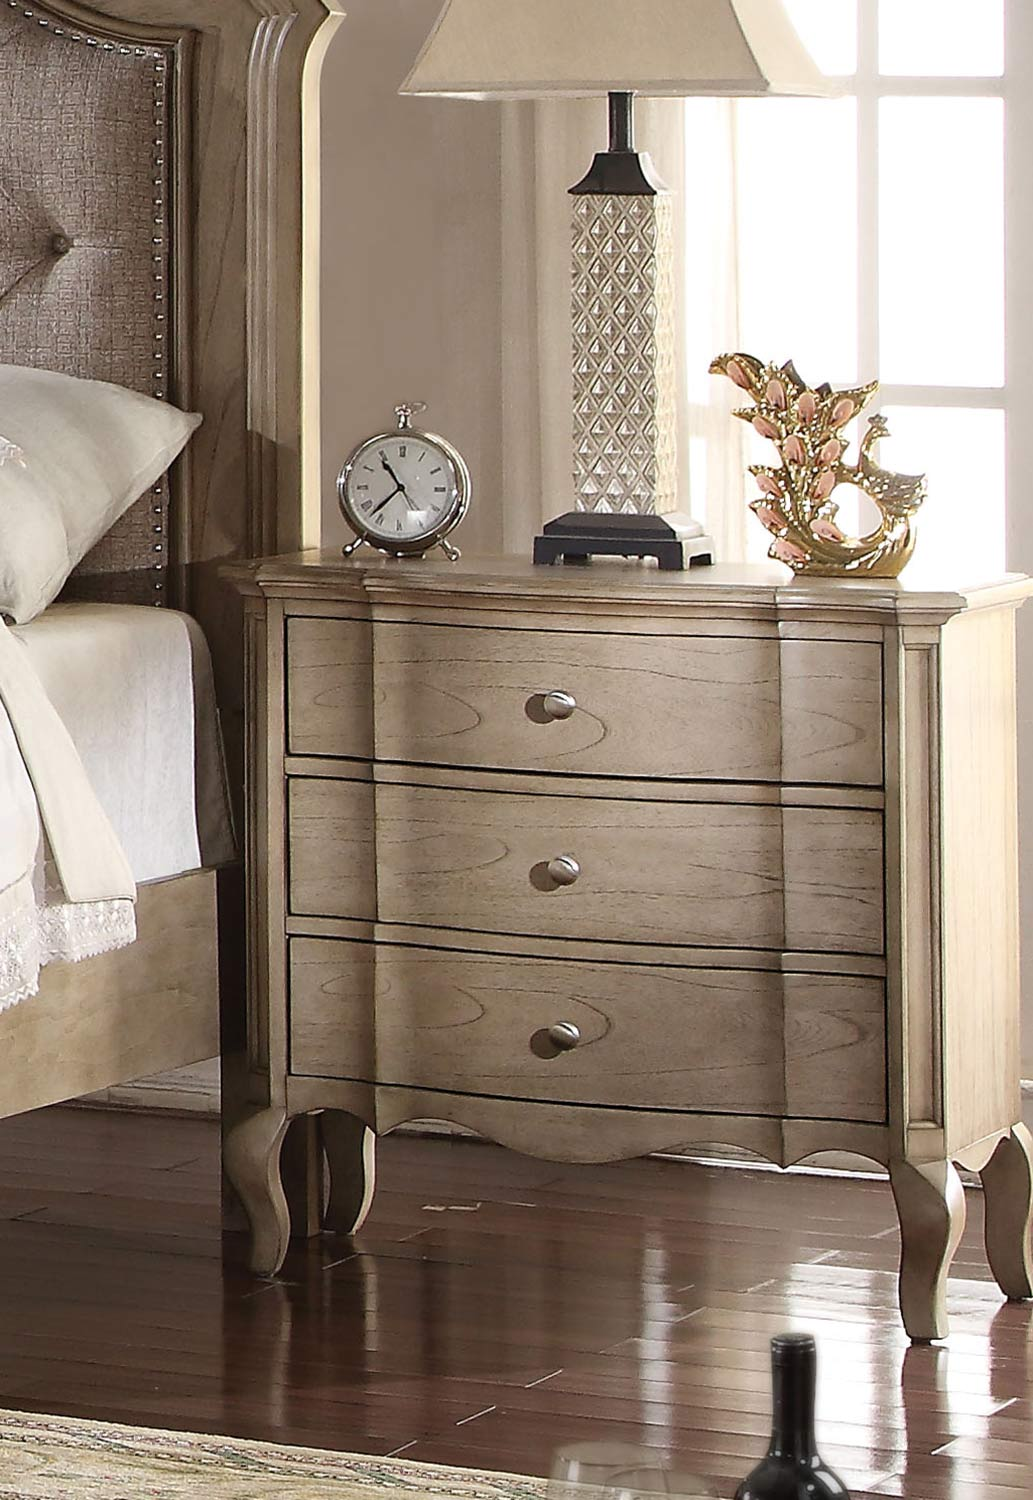 Acme Chelmsford Nightstand - Antique Taupe